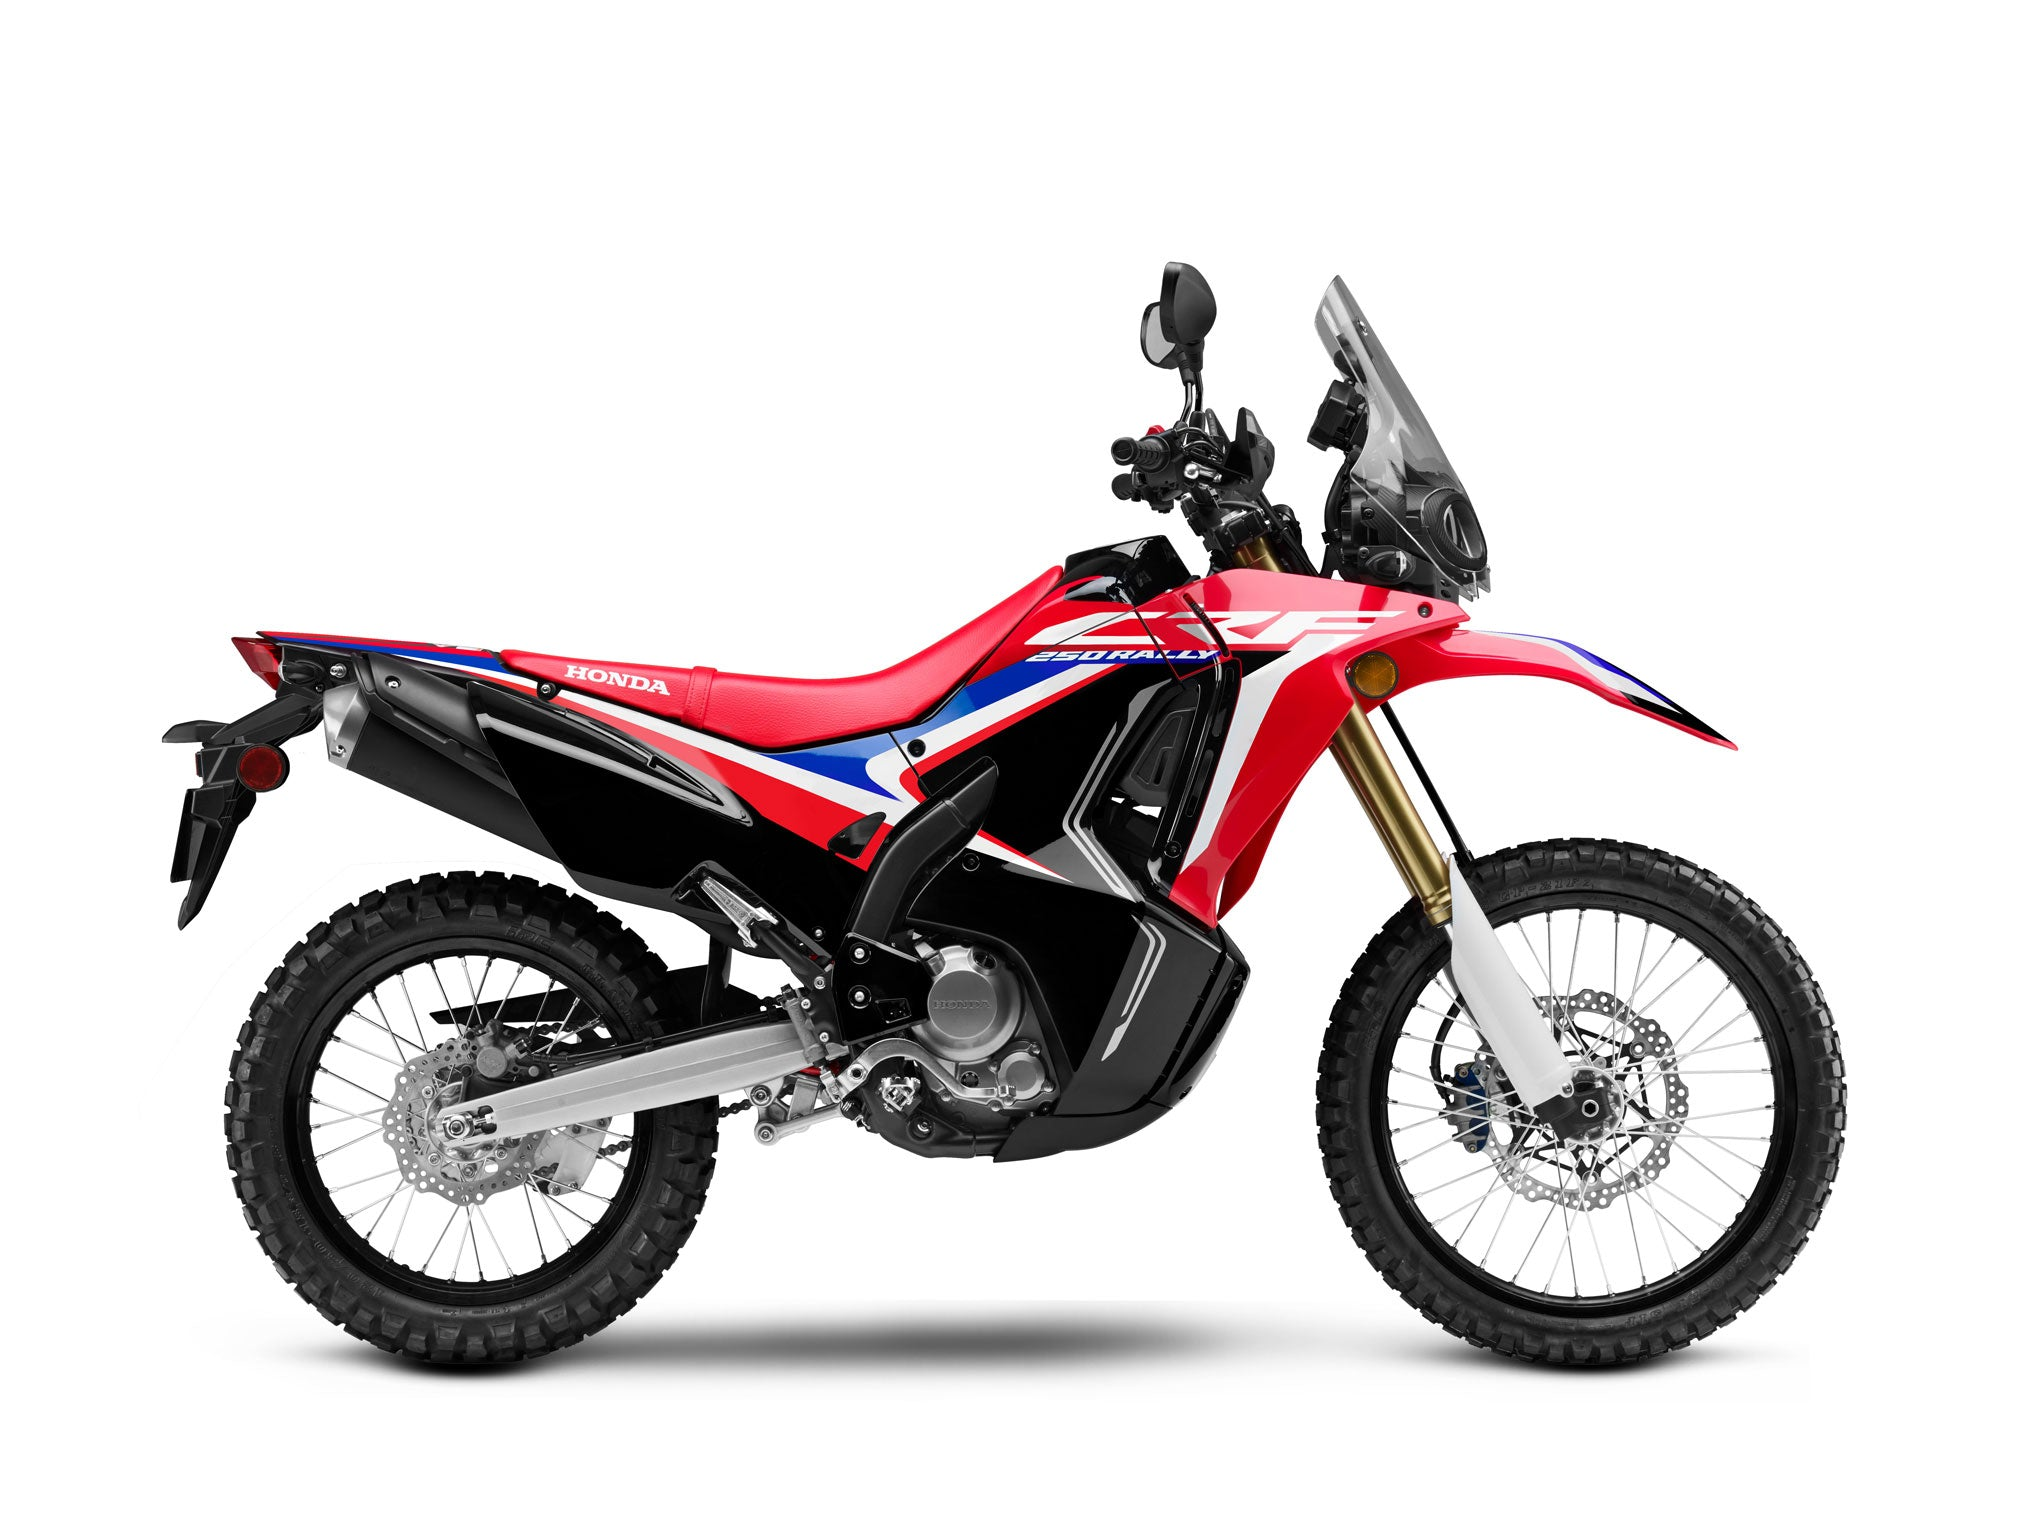 Honda CRF250L Rally – price starting at $5,199